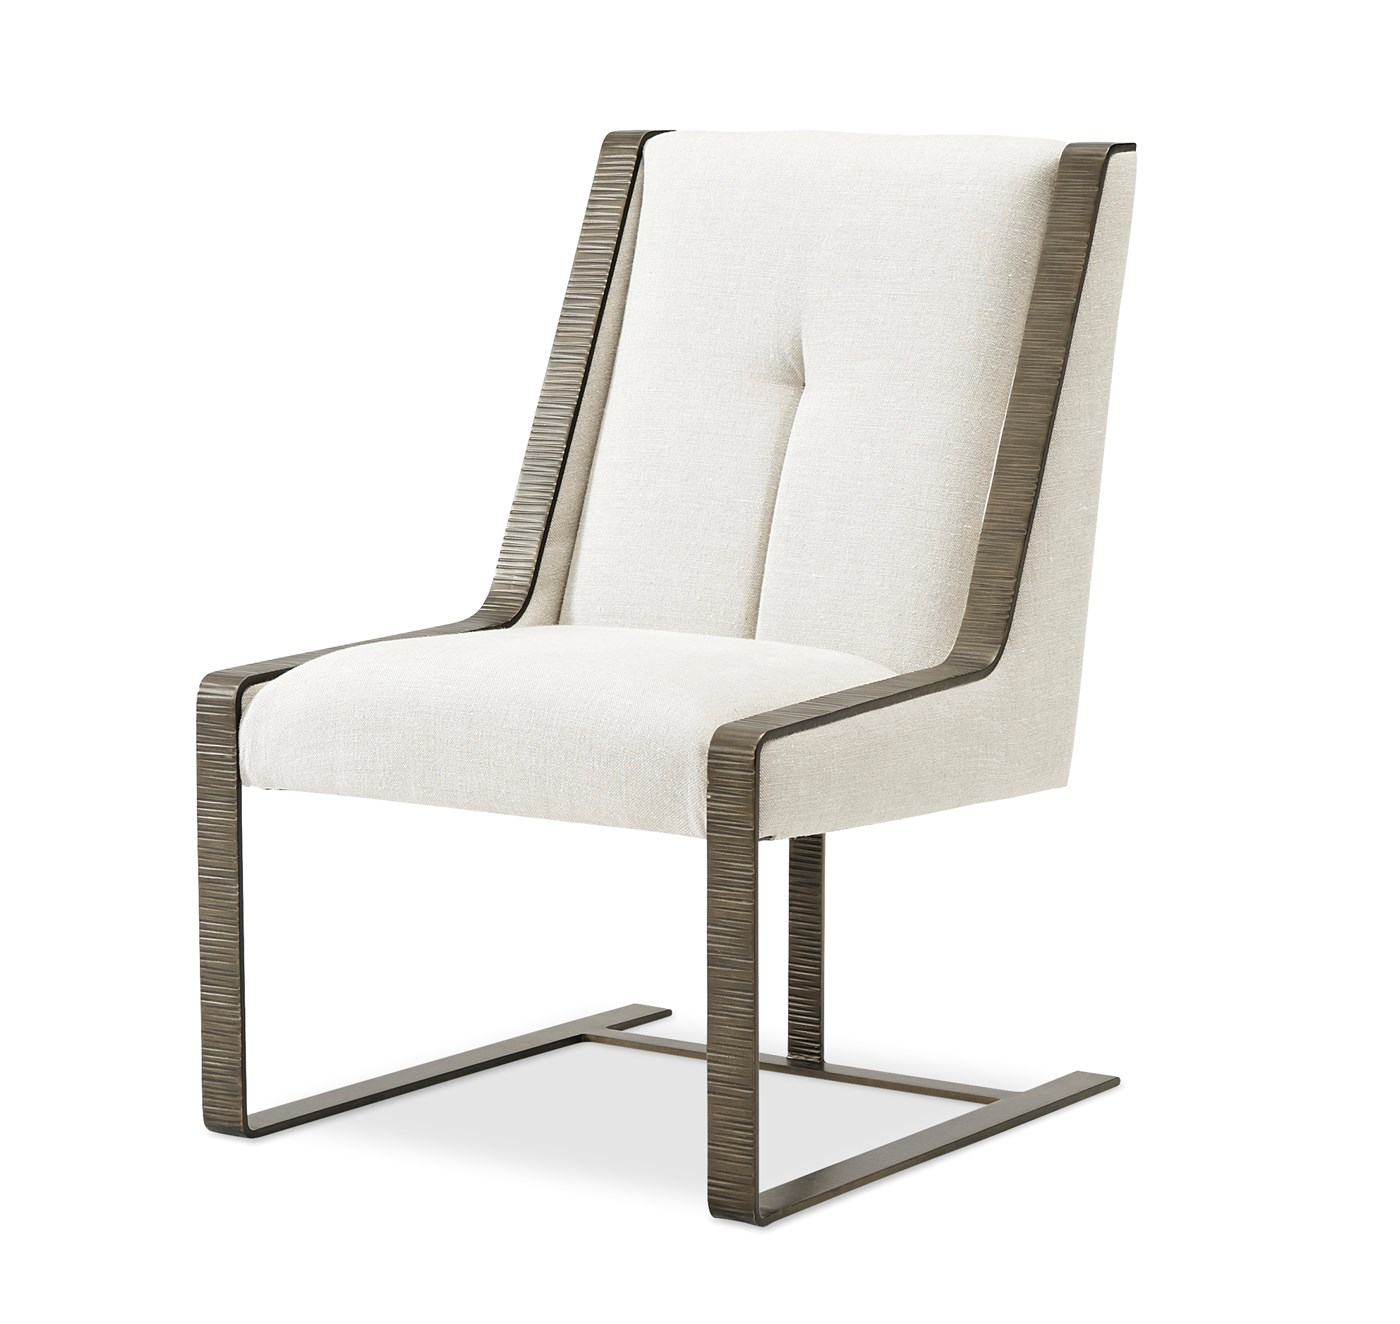 Madre Chair Dining Chairs Dining Room Robb Stucky